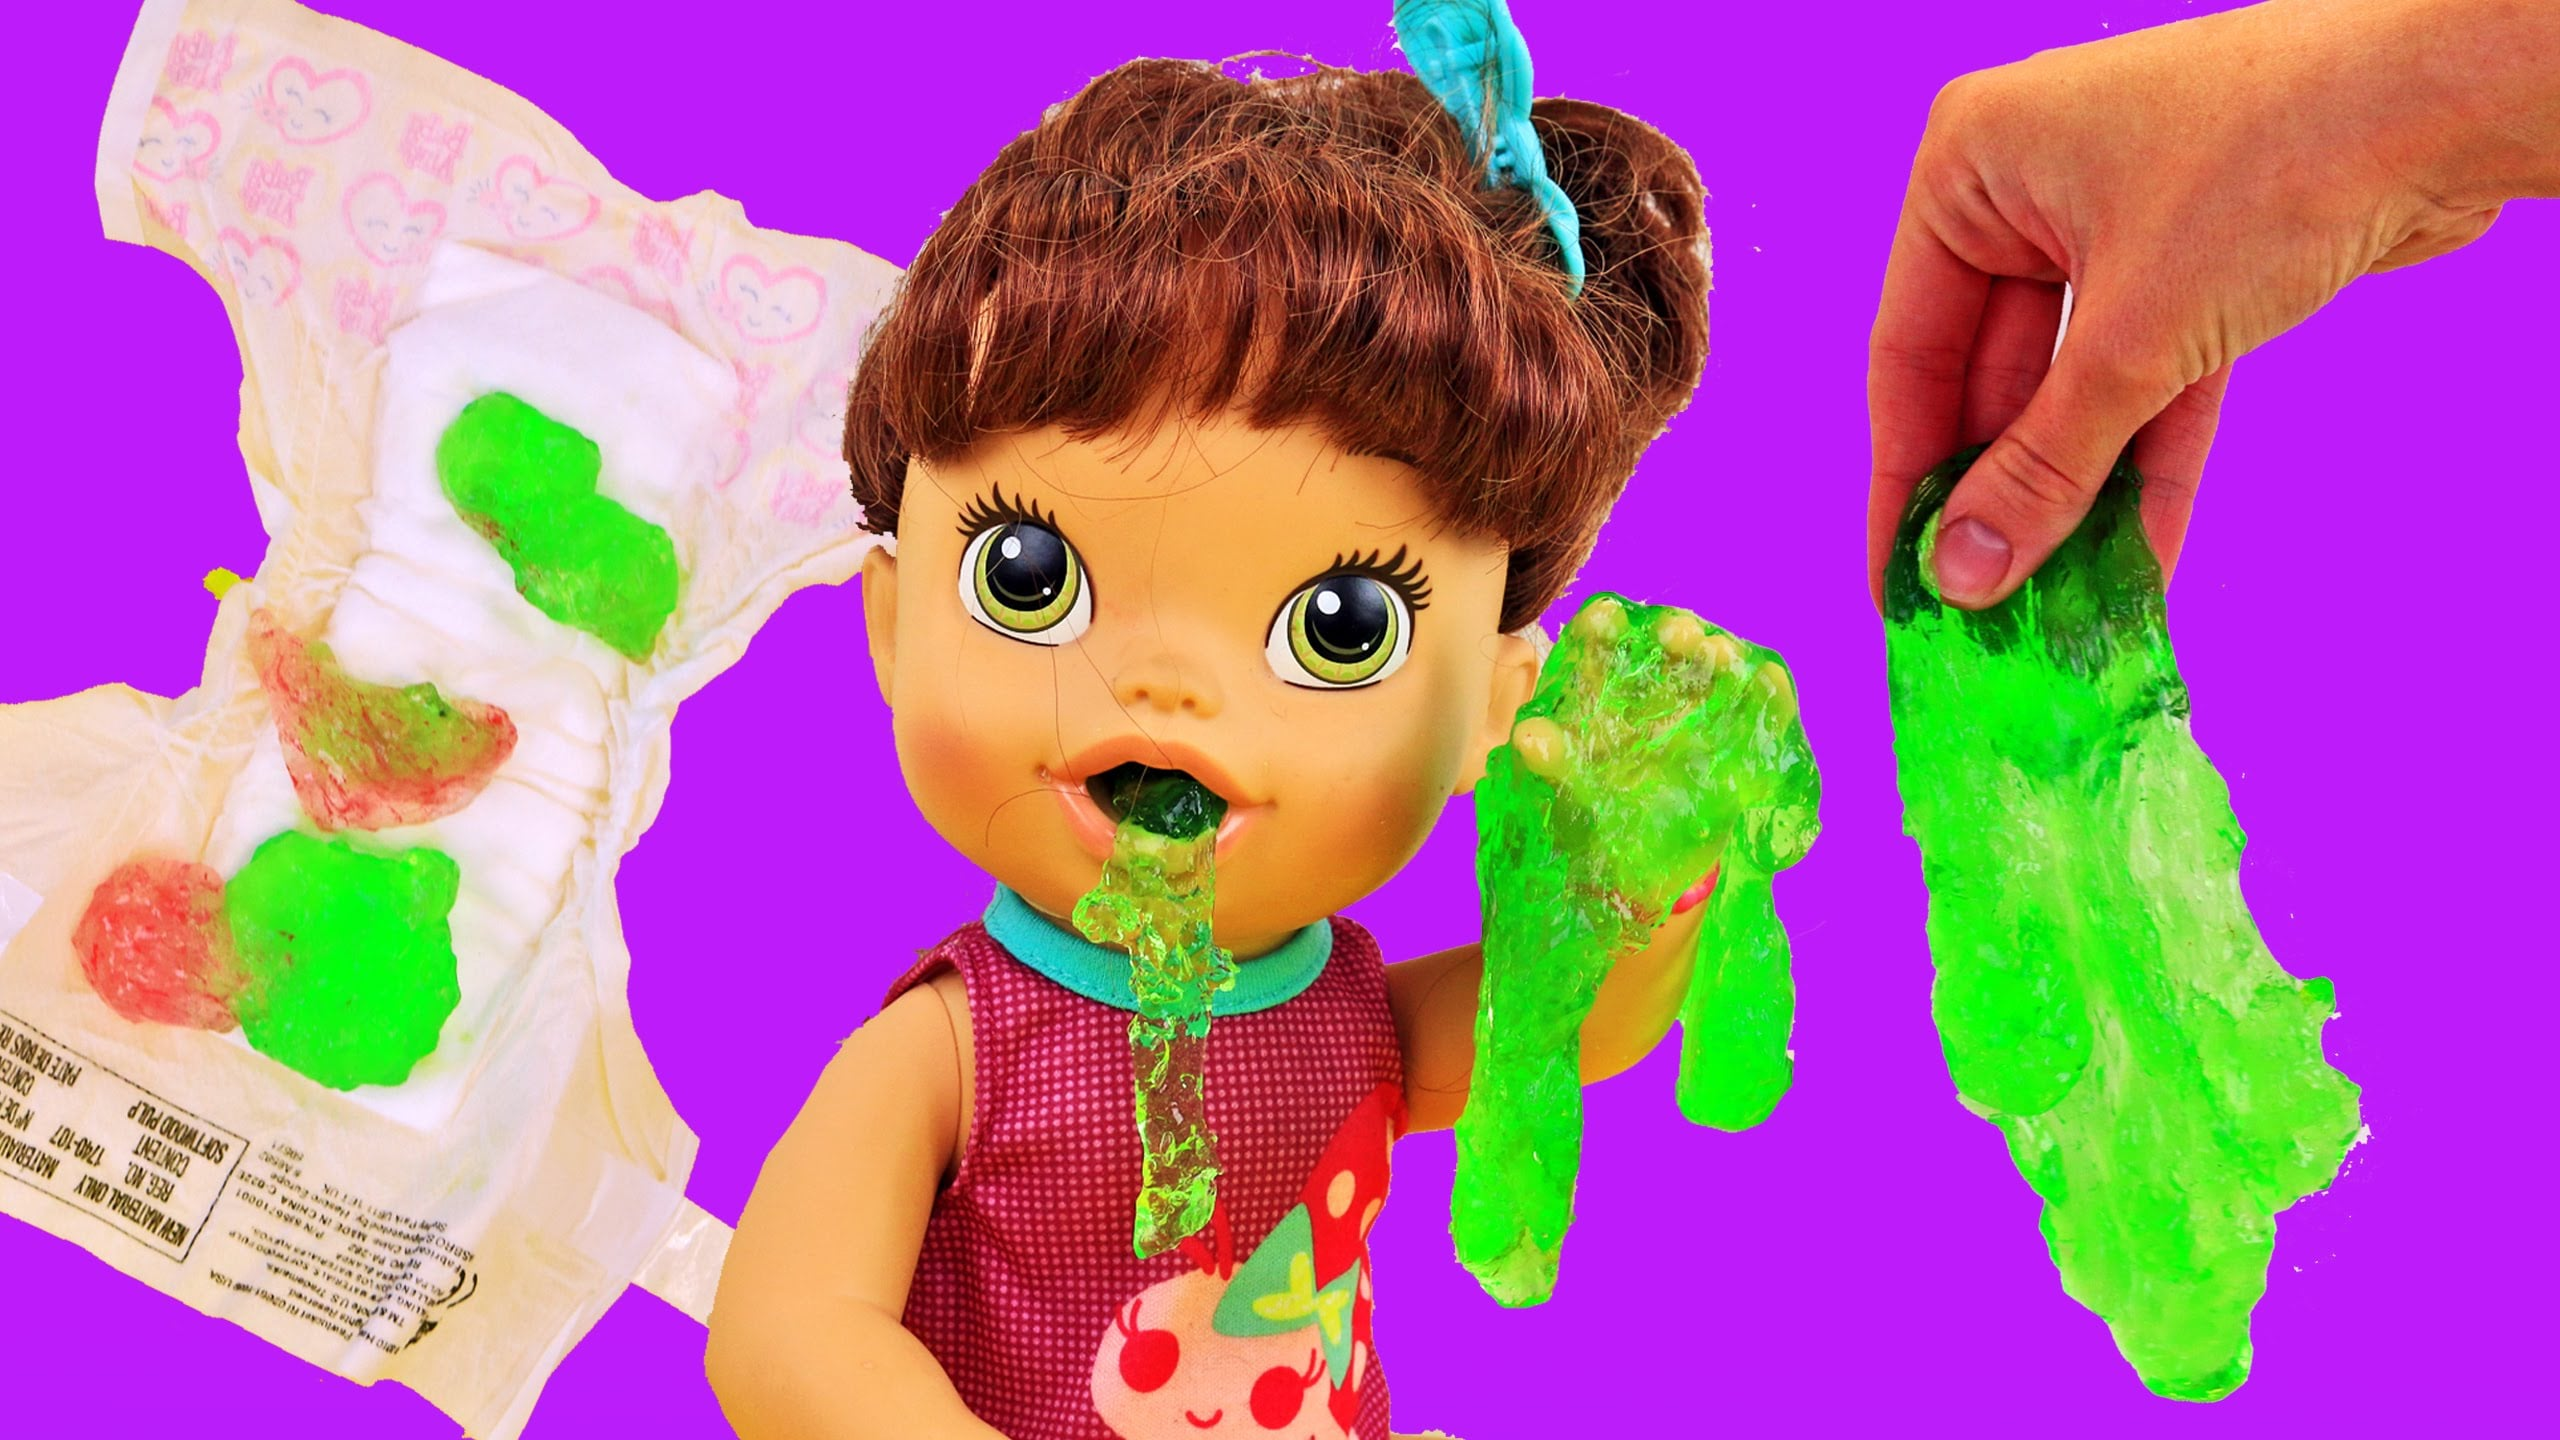 Child Alive Lucy Dolls Eats Slime Gooey Inexperienced